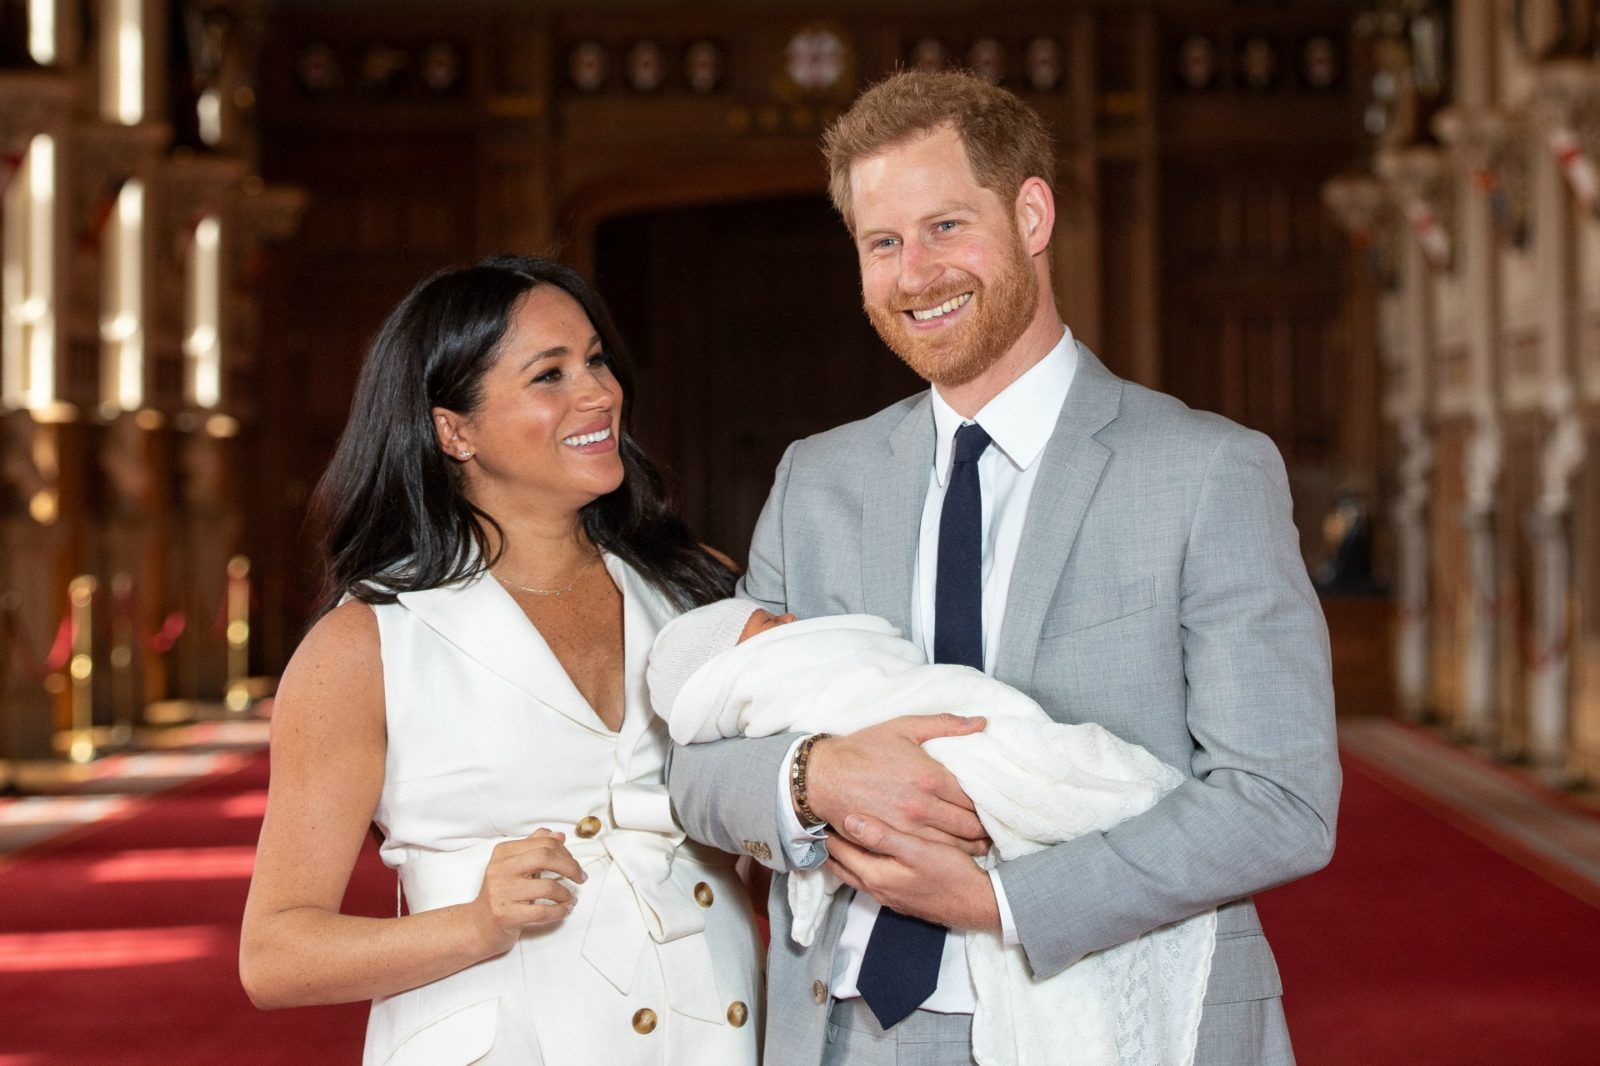 Meghan and Prince Harry have named their son Archie Harrison Mountbatten-Windsor.